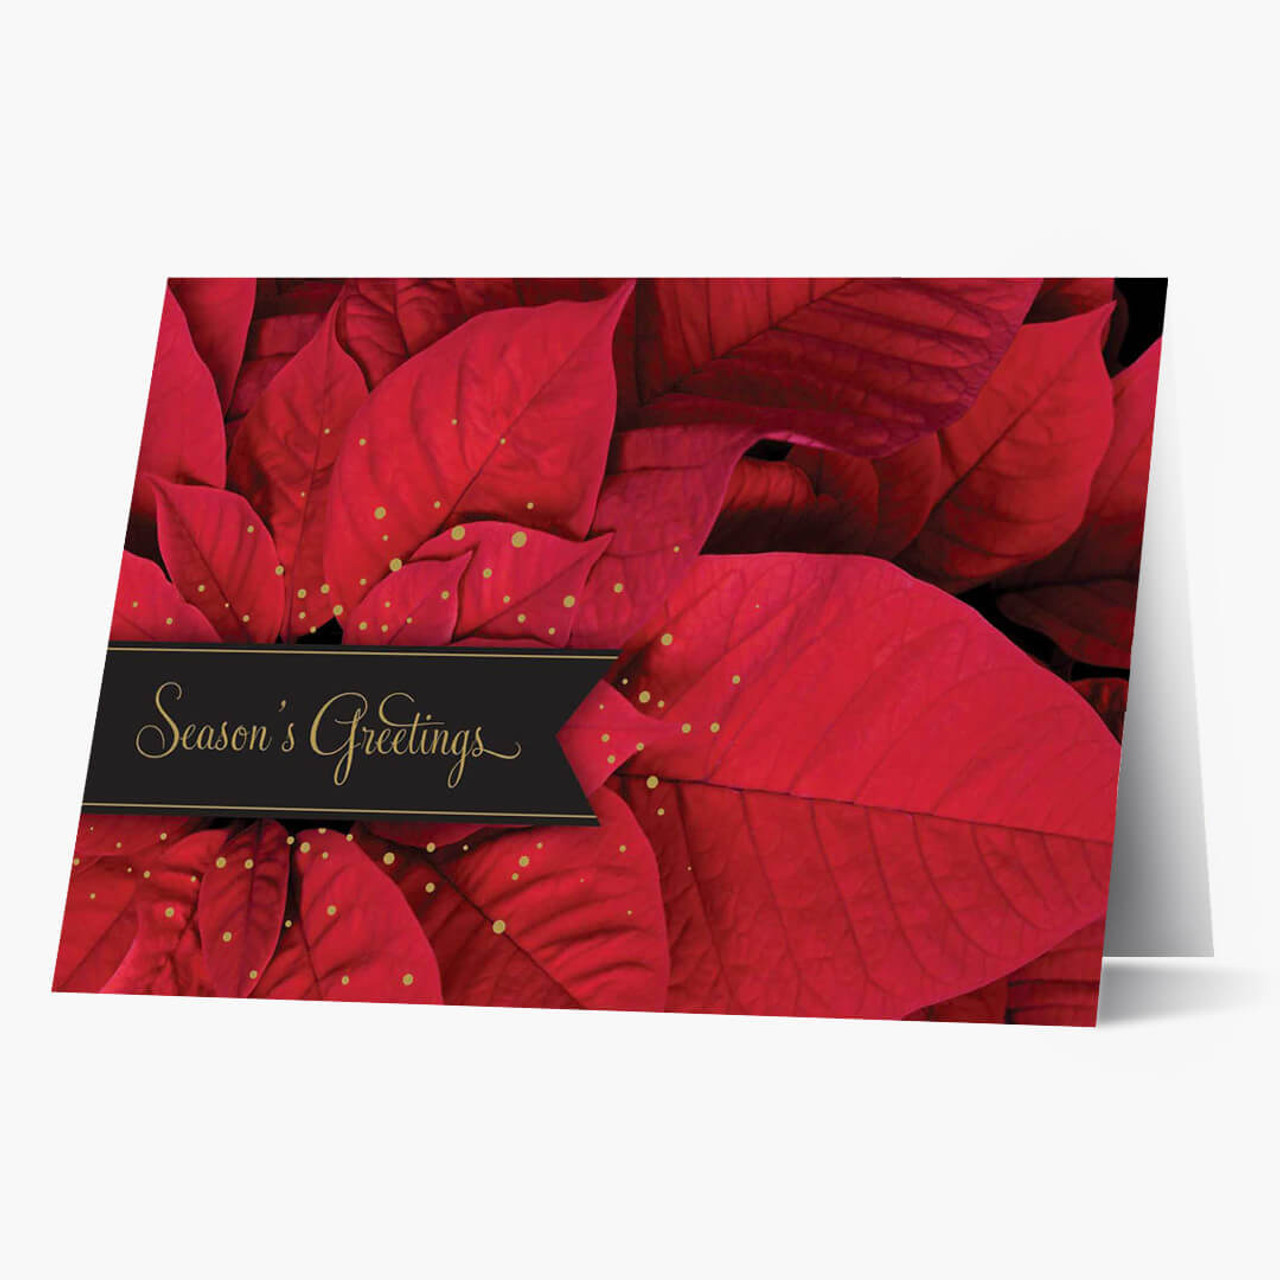 Picturesque Poinsettia